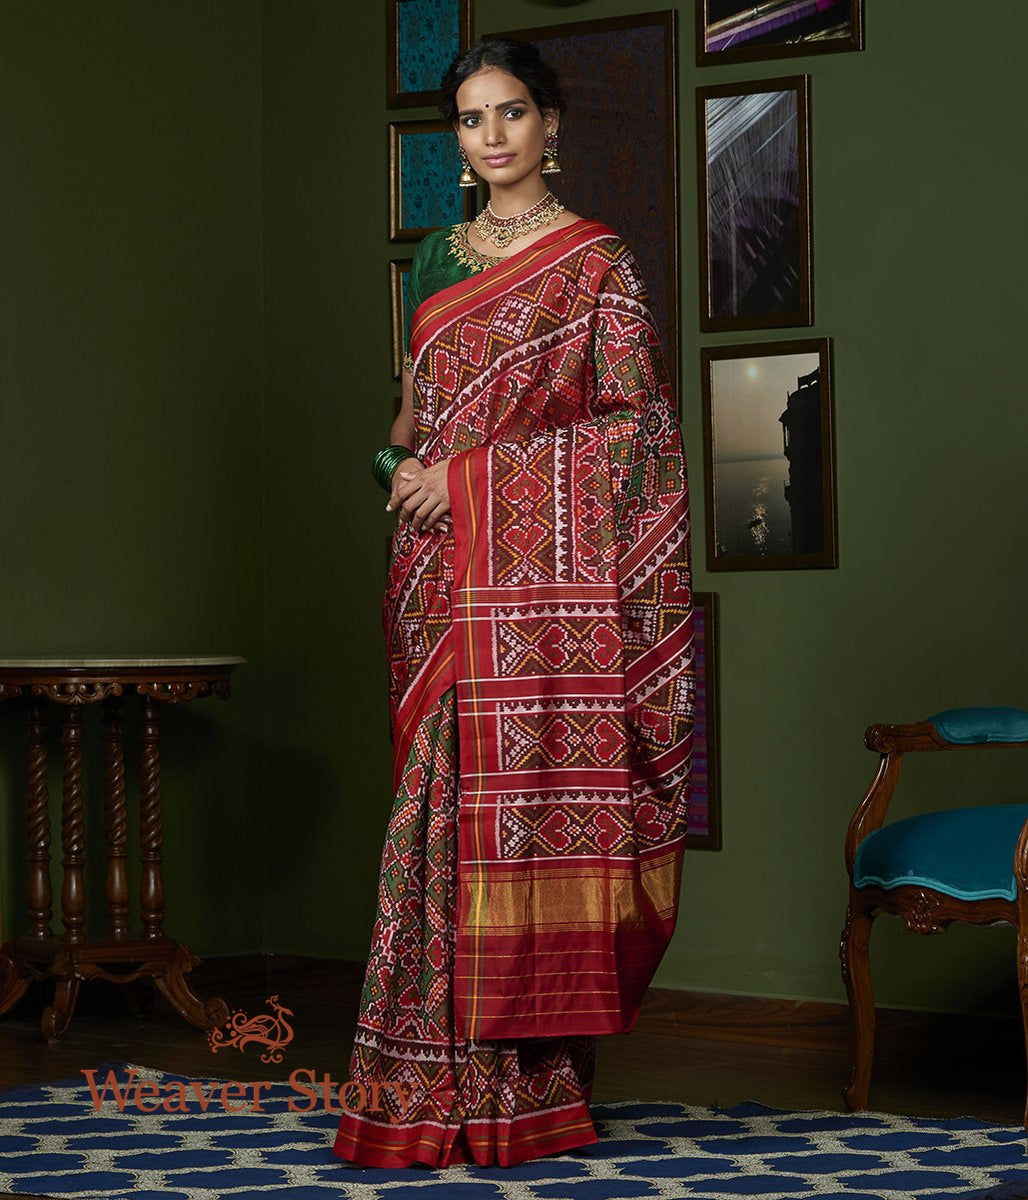 Handwoven Red and Green Gujarat Patola Saree